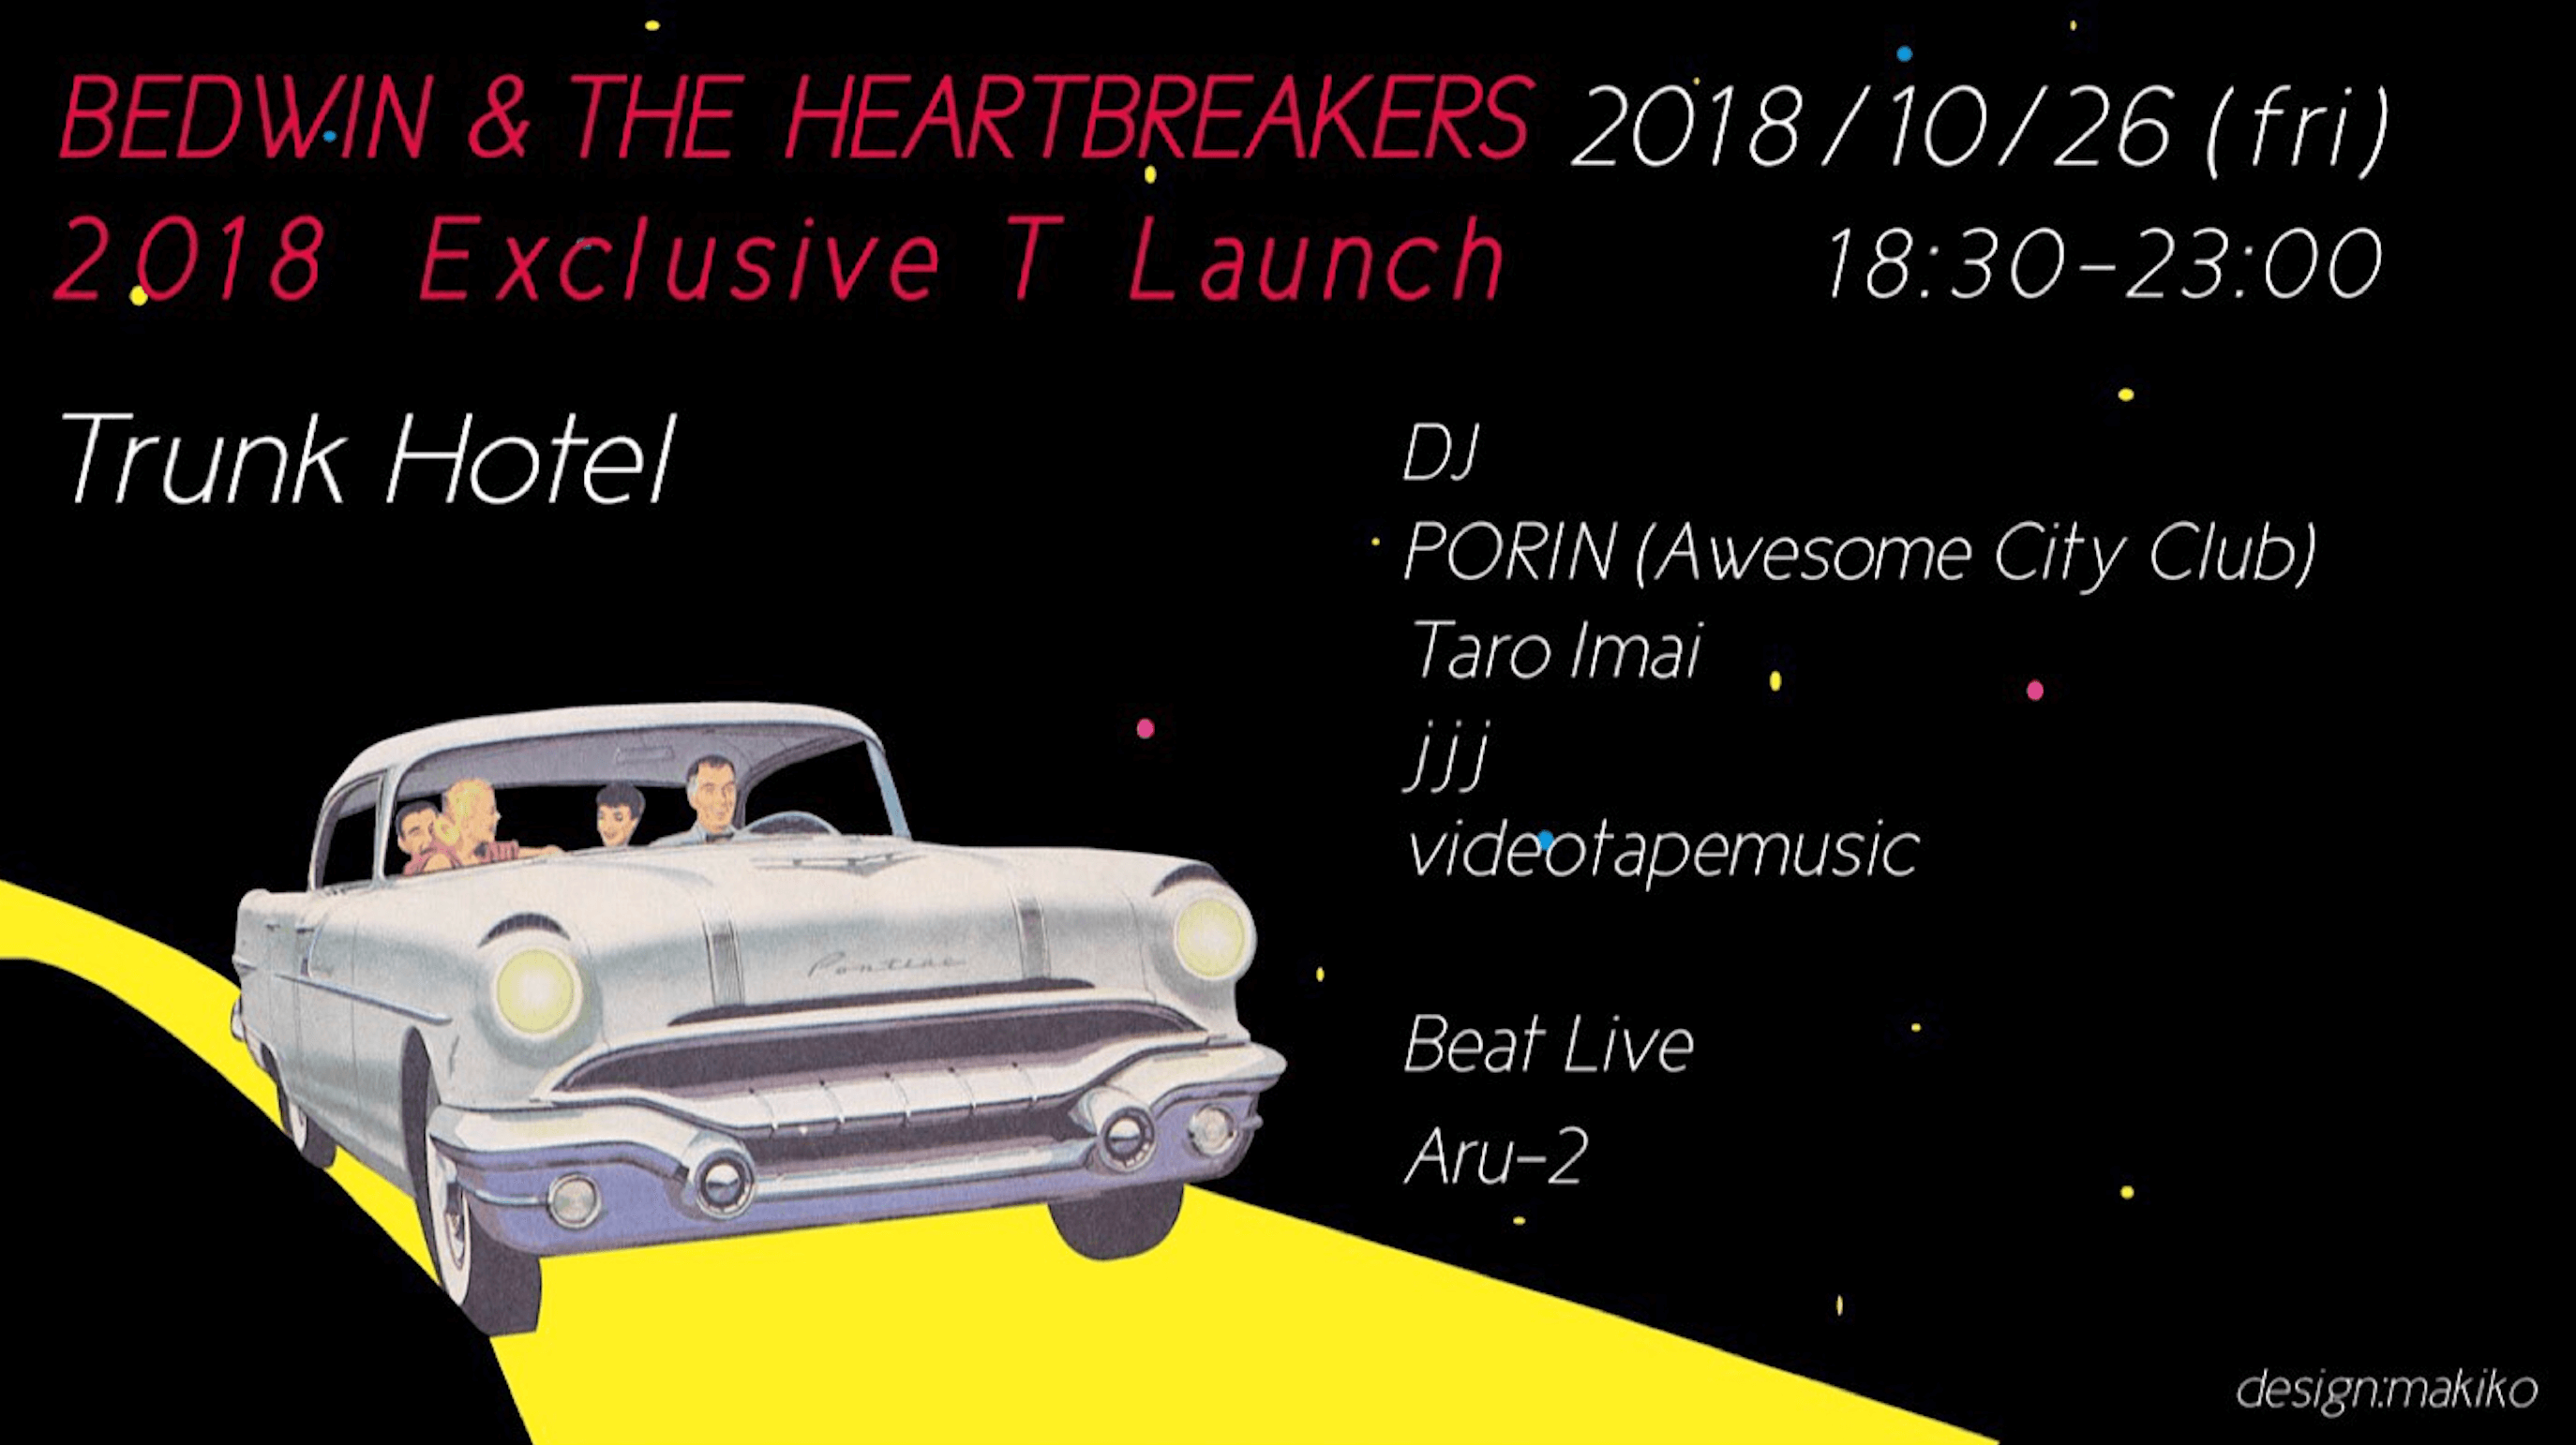 BEDWIN& THE HEARTBREAKERS 2018 T Launch